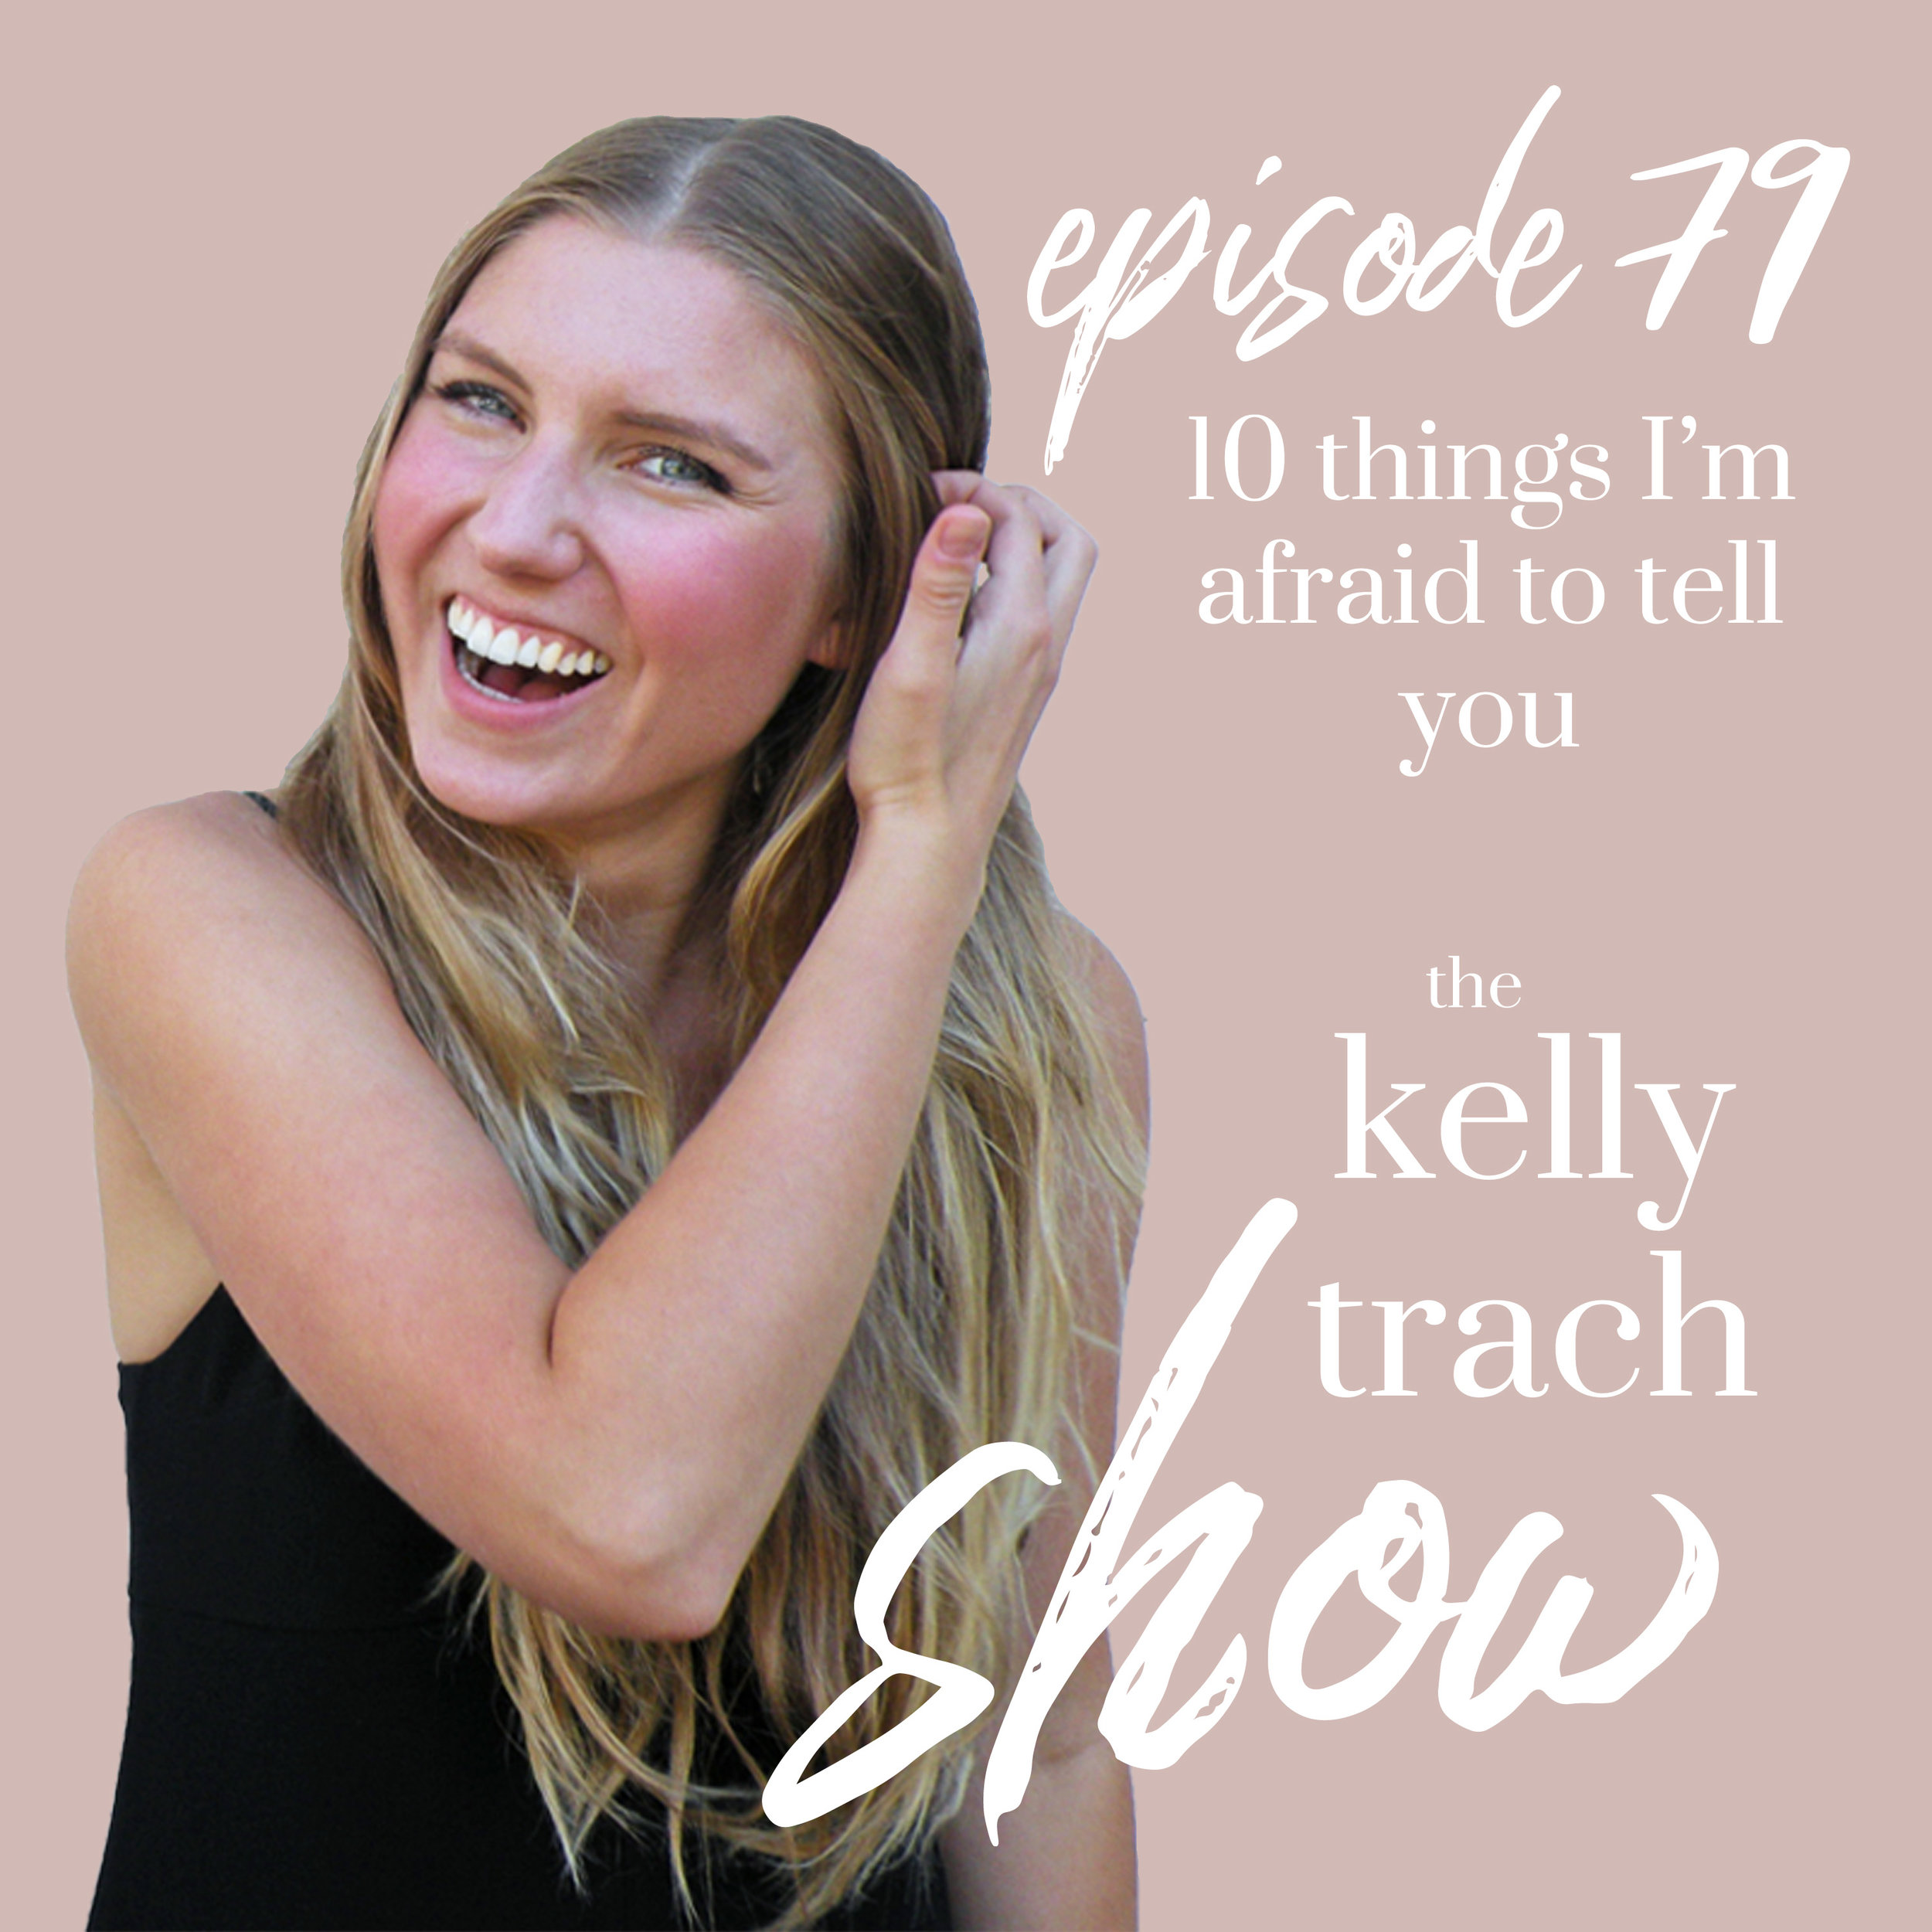 79 - Things I'm Afraid to Tell You - The Kelly Trach Show Podcast.jpg